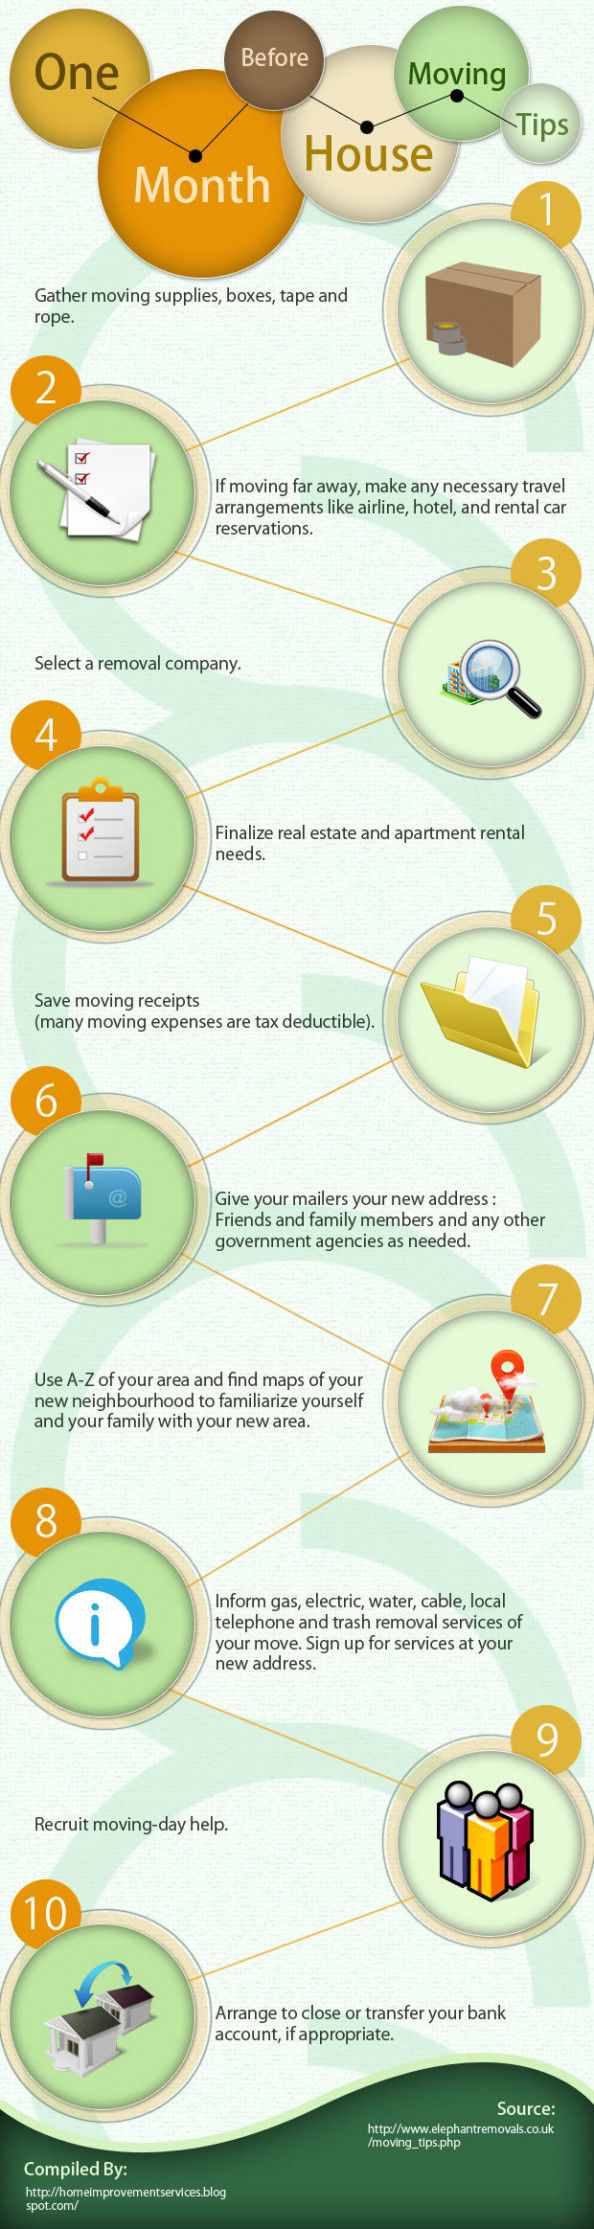 One Month Before House Moving Tips [Infographic]  Infographic